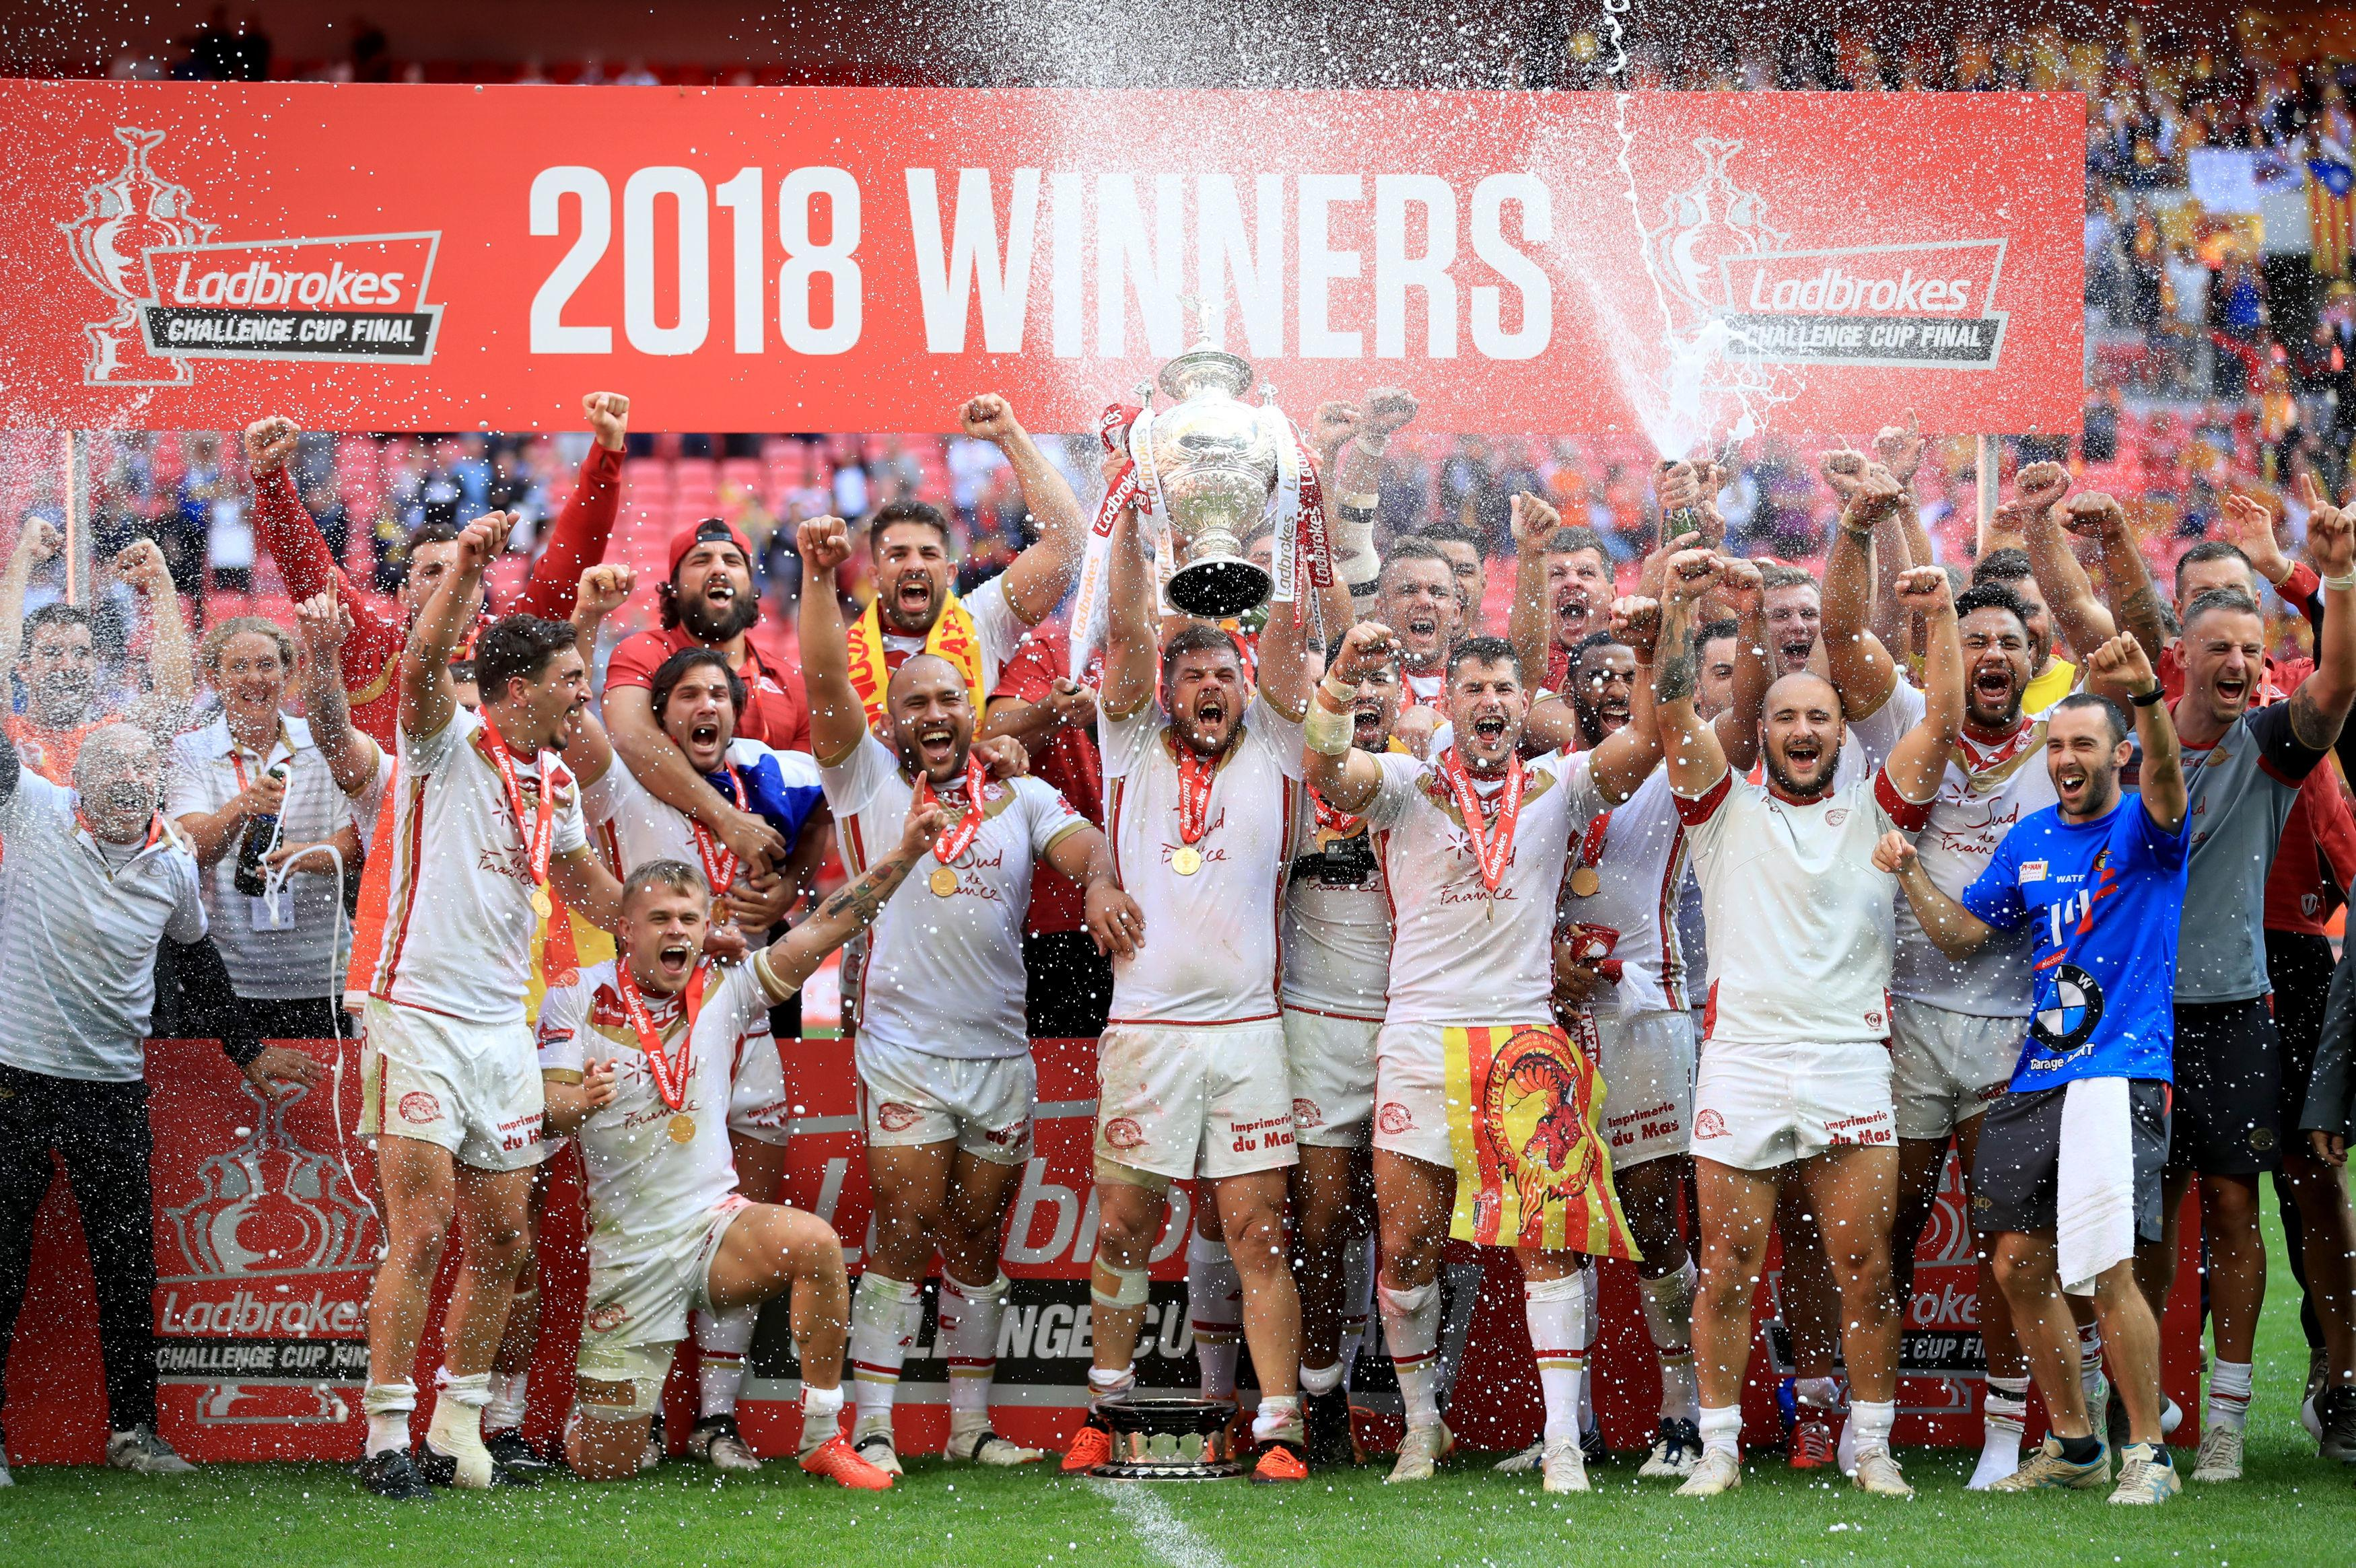 Catalans Dragons became the first team outside of England to win the Challenge Cup in its 122-year history